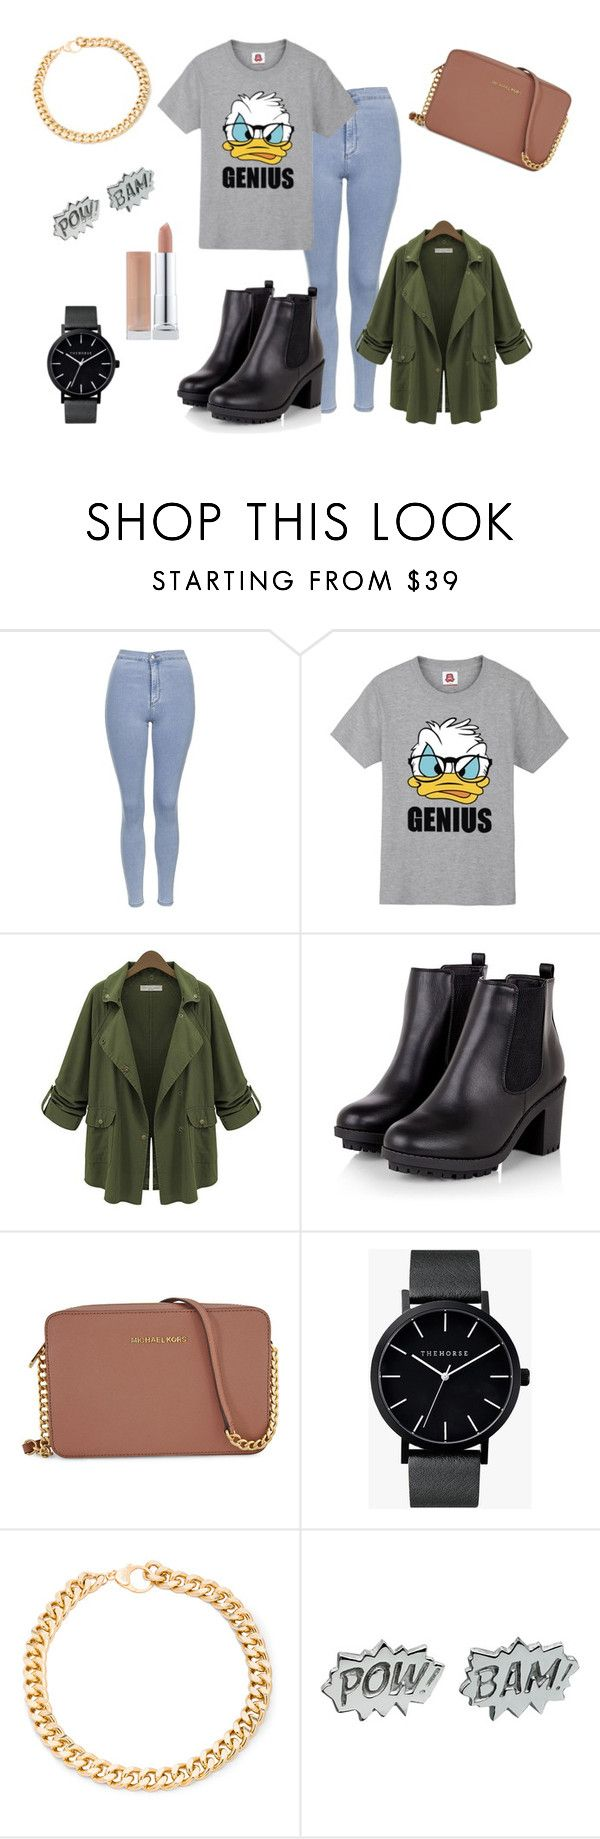 """#GENIUS :))"" by dagusia112 on Polyvore featuring moda, Topshop, Disney, Michael Kors, The Horse, Alessandra Rich i Edge Only"